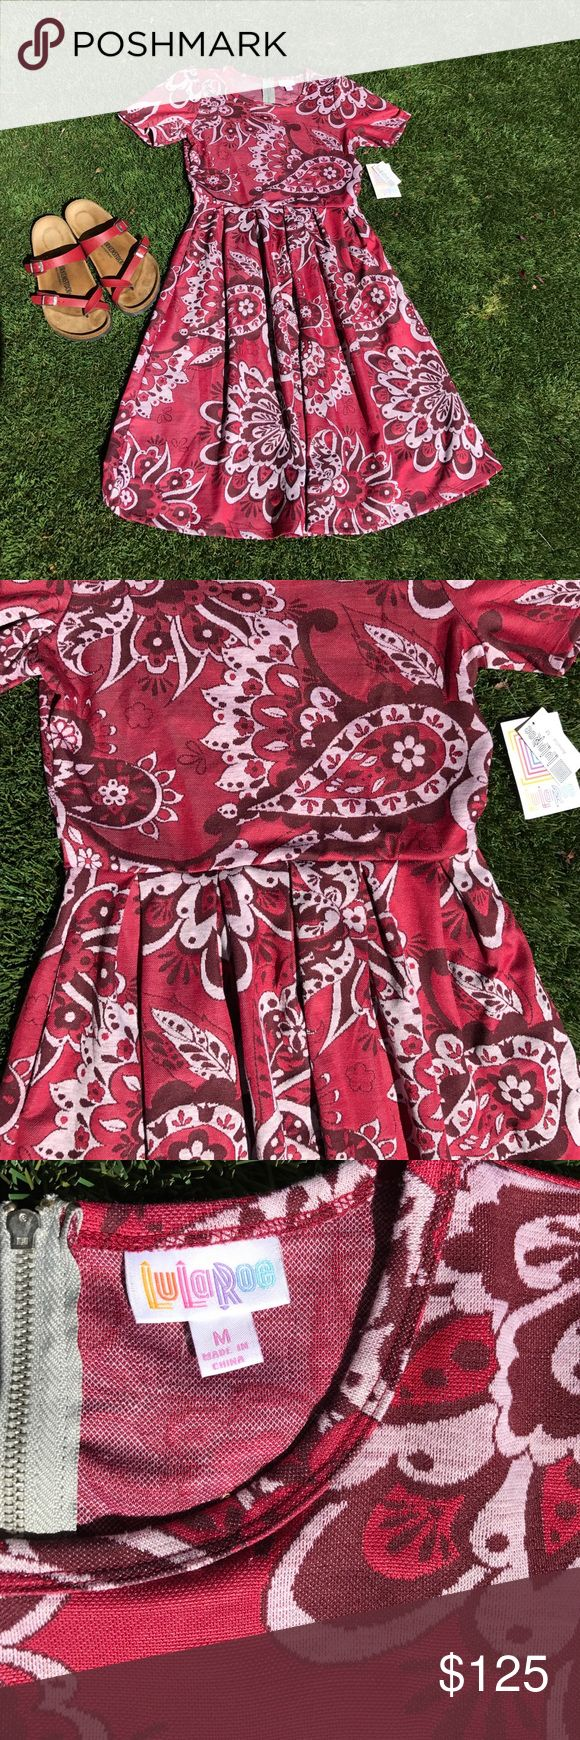 🦄🦄LuLaRoe Amelia Red Paisley Print🦄🦄. BNWT HTF LuLaRoe Amelia Dress. Size Medium.  BNWT.  Hard to Find Paisley Print!  This dress can be worn throughout the seasons. Pair it with boots, Birkenstocks, heels, or converse. Amelia is versatile and stretchy! Wear with the zipper in the back or the front!! This dress has POCKETS!! Smoke free home🦄.  Is this your Unicorn, Arrow, Elephant, Disney Roses, Paisley, or Owl Print? I provide same or next day shipping, depending on time of purchase…